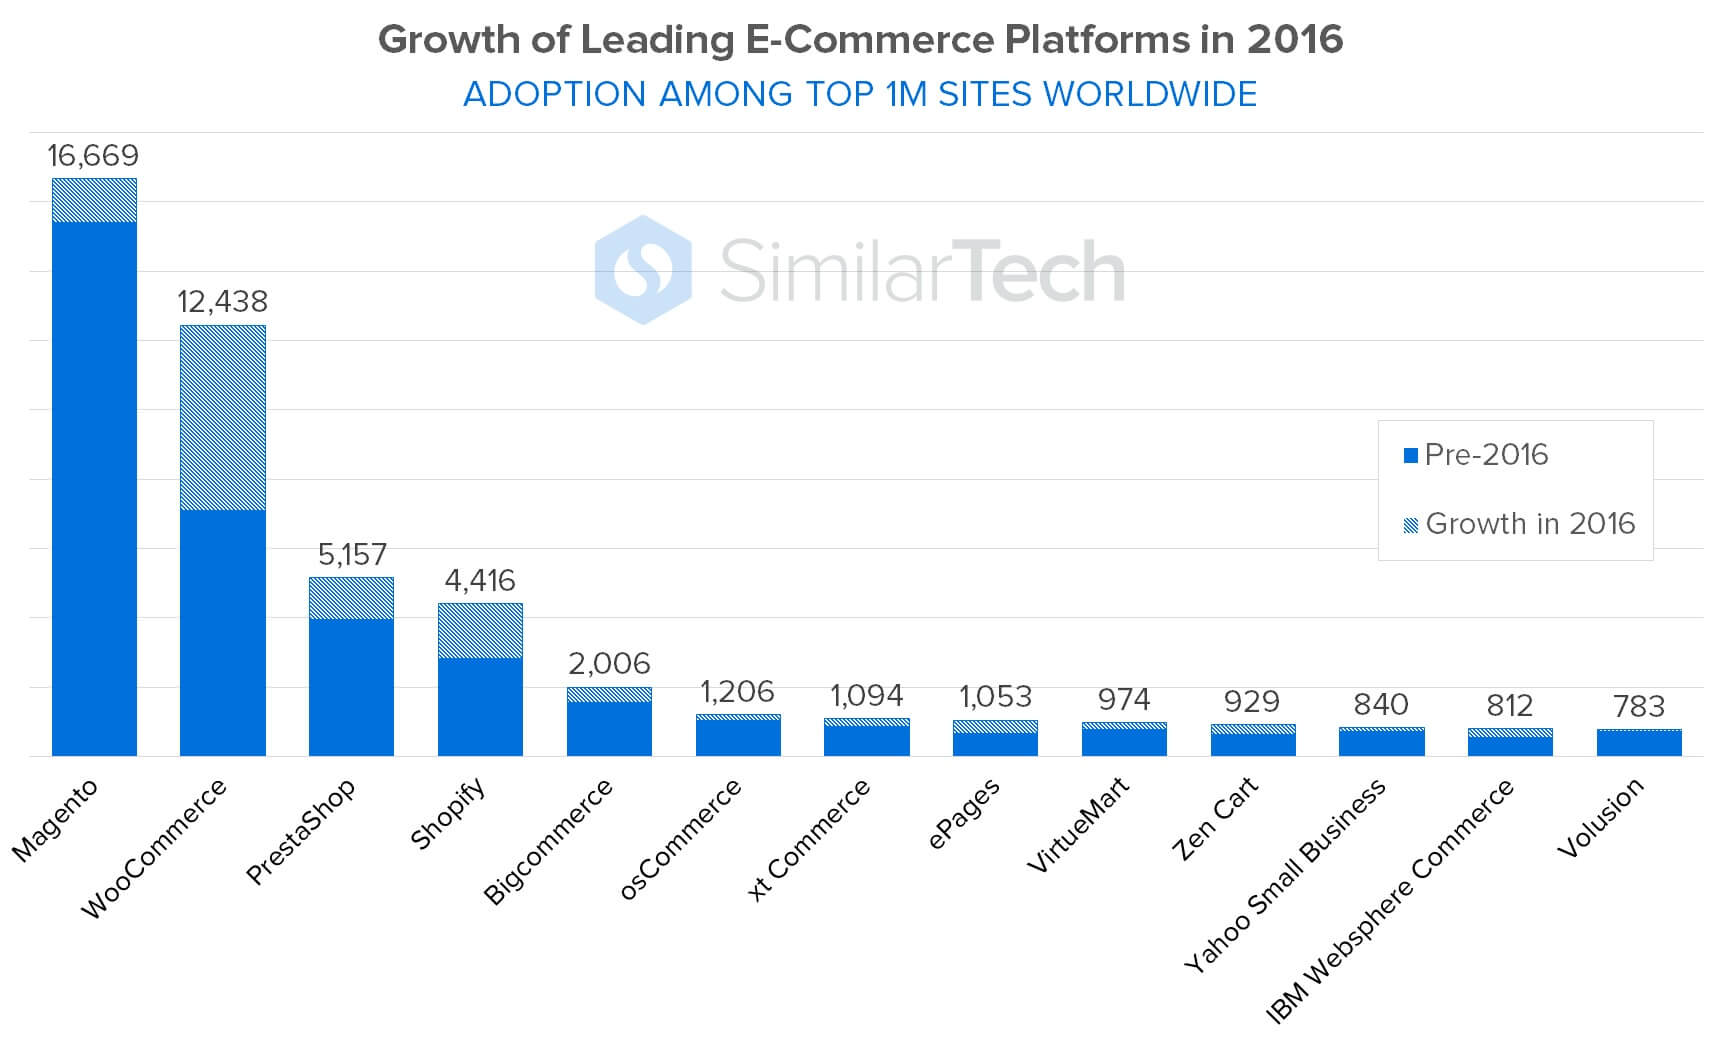 Market share of the largest e-commerce platforms